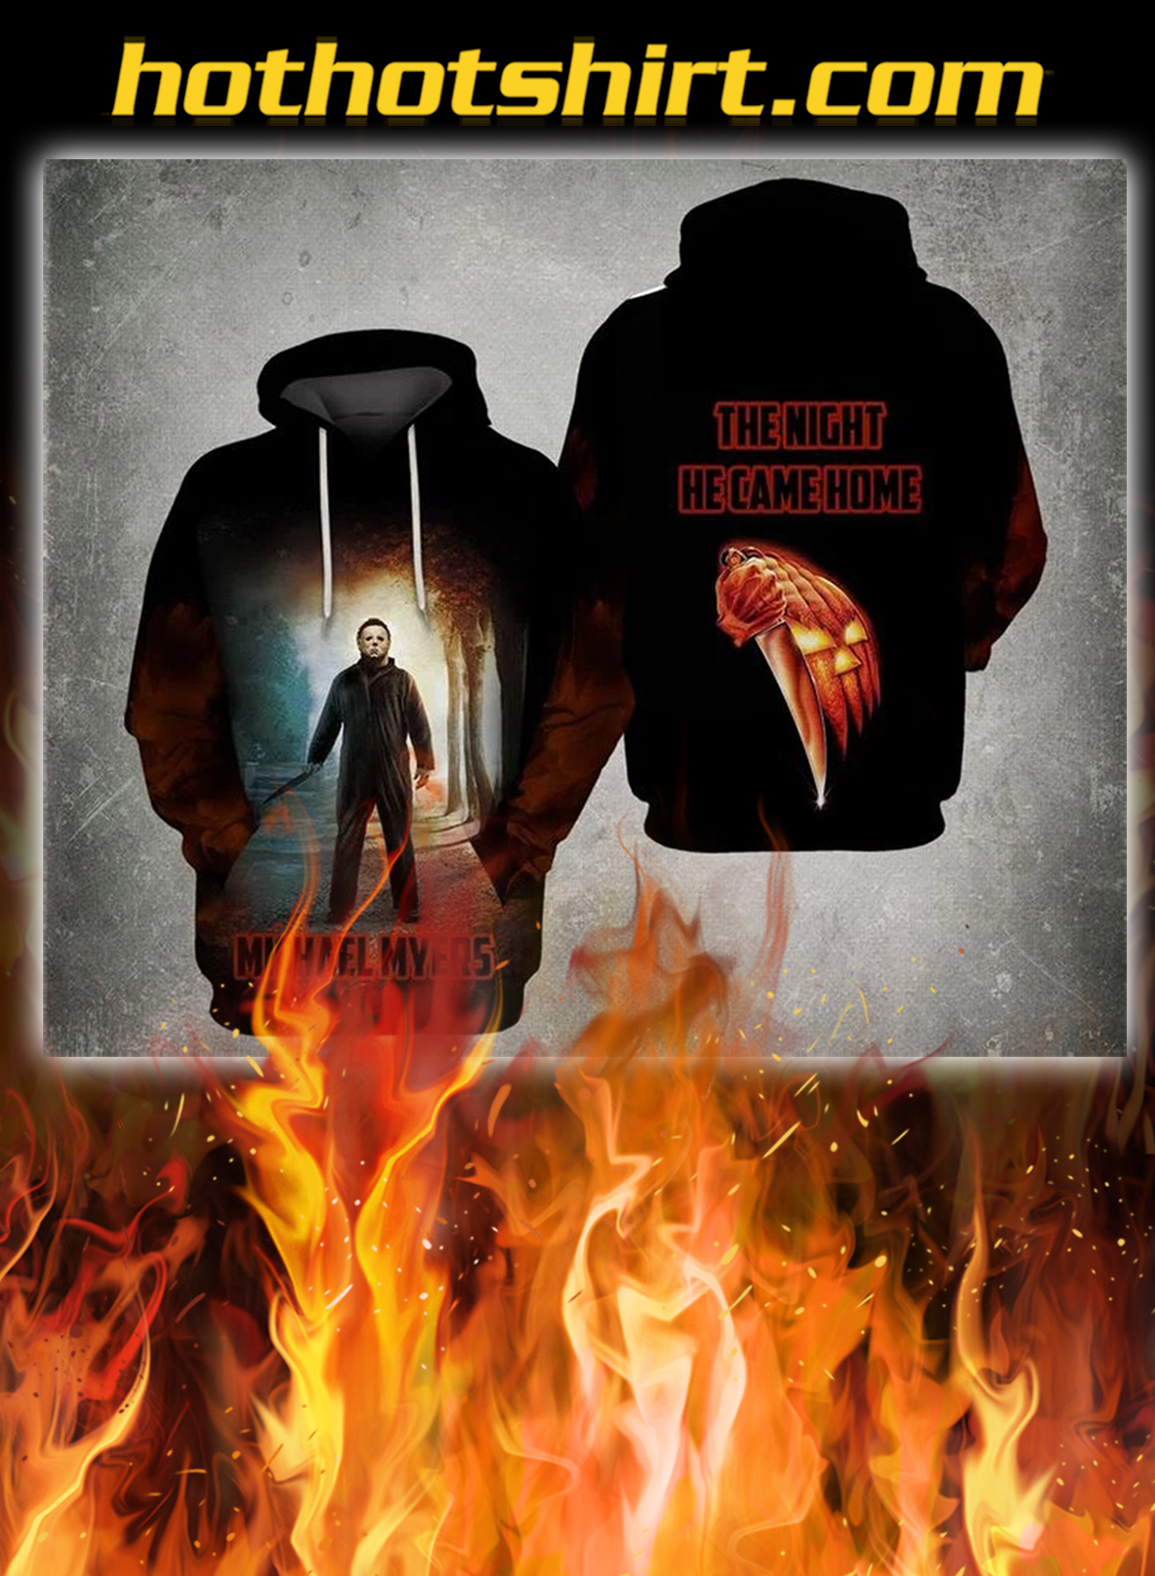 Michael myers the night he came home 3d all over print hoodie - L